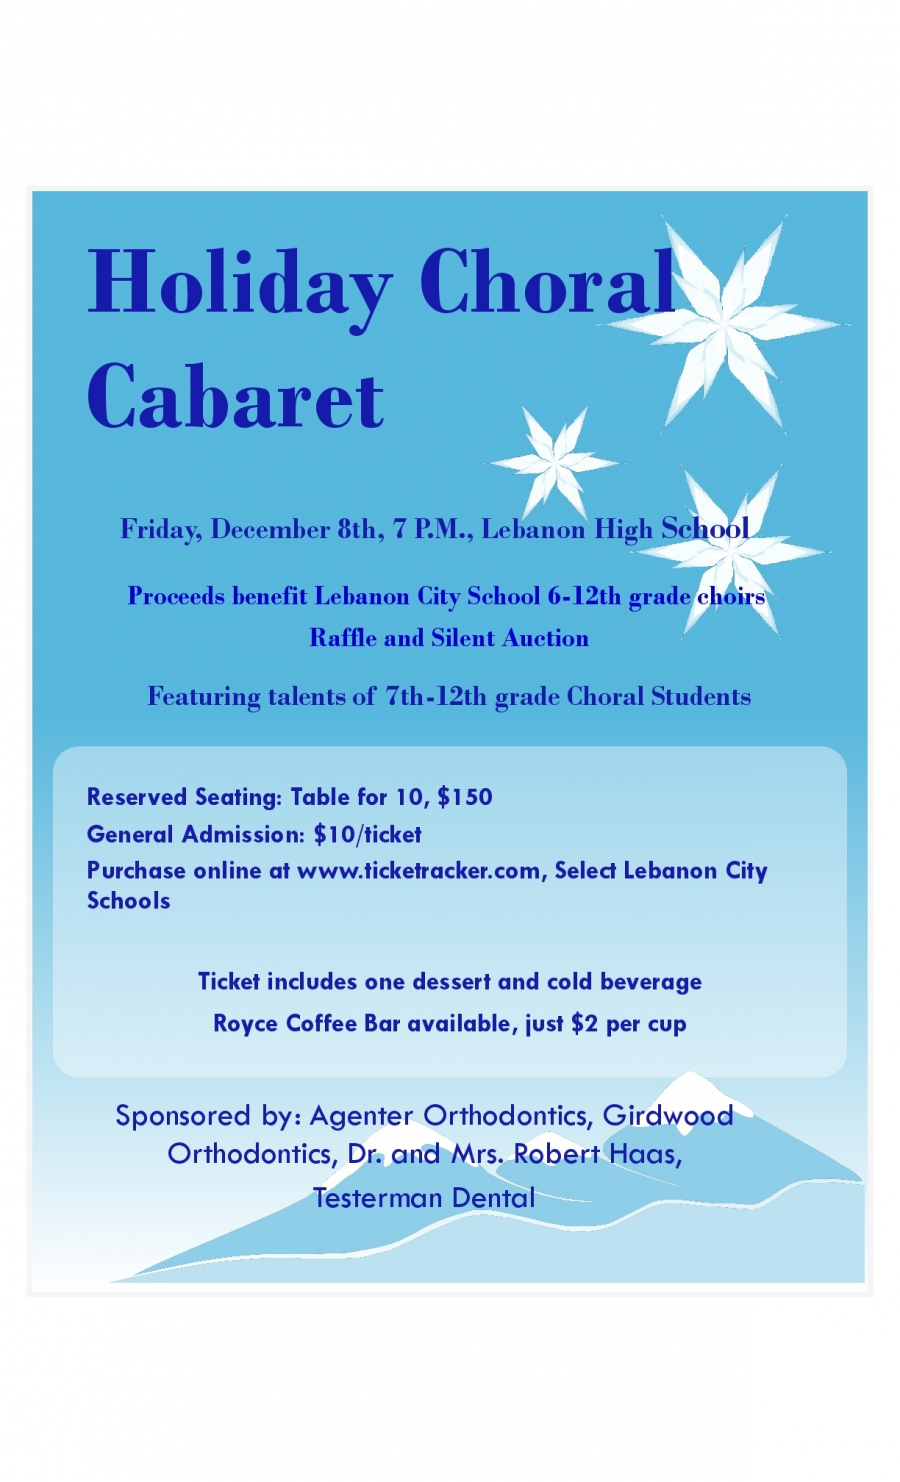 Choir fundraiser